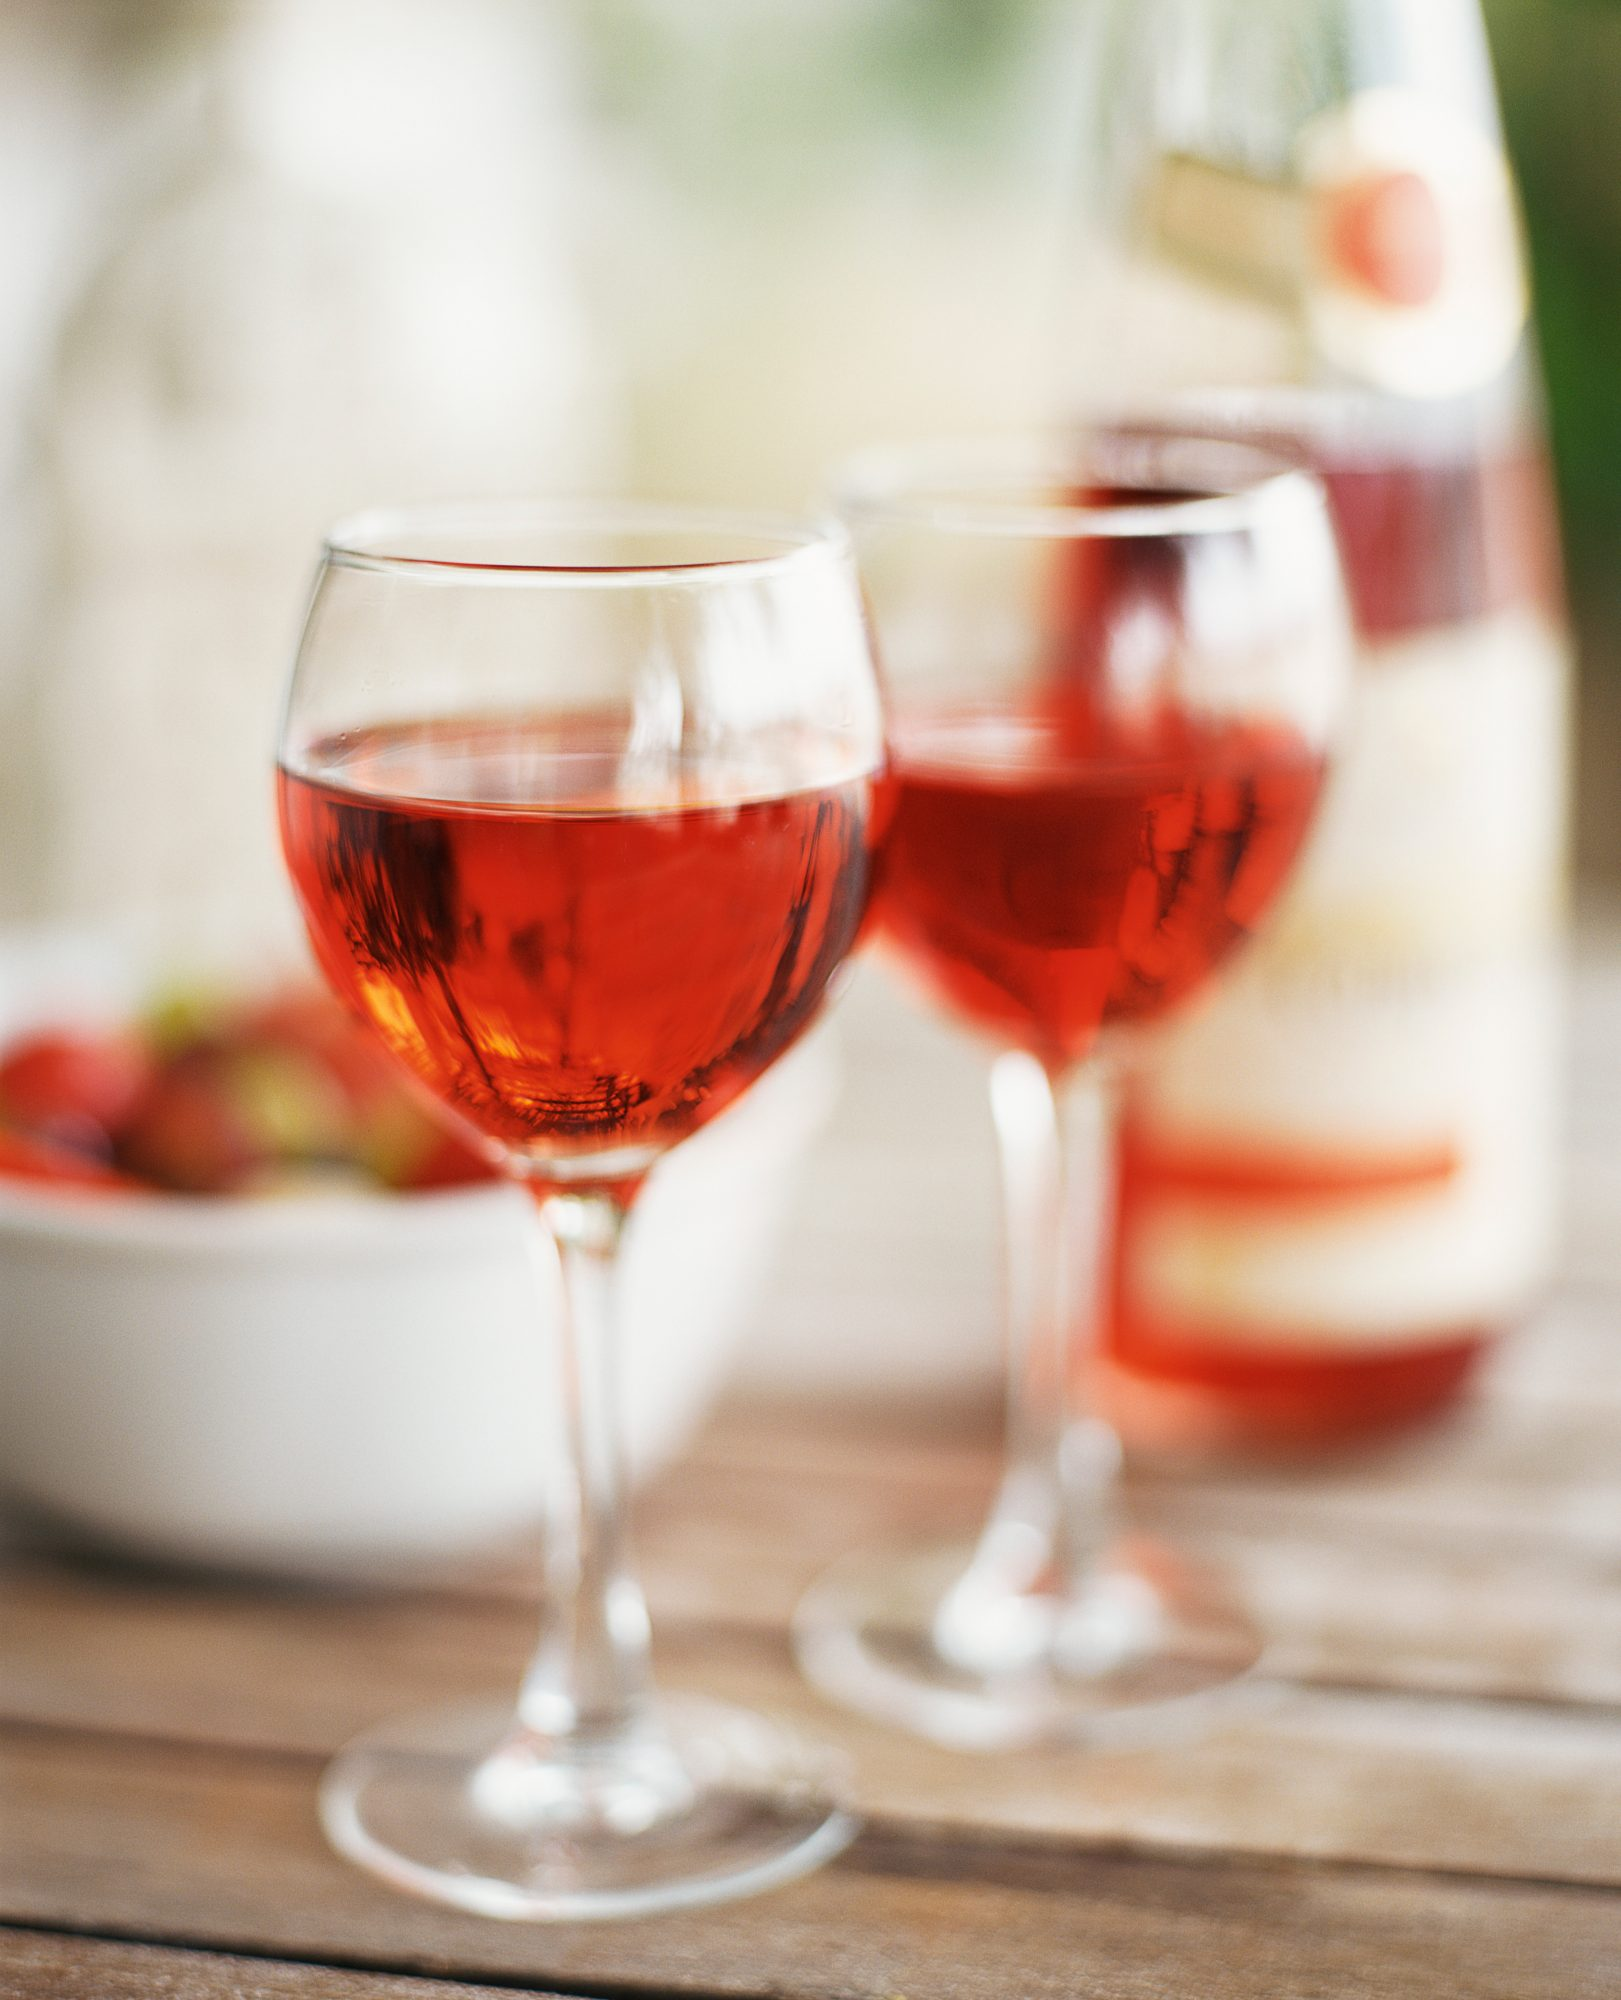 This $8 Bottle of Rosé Was Just Named One of the Best in the World